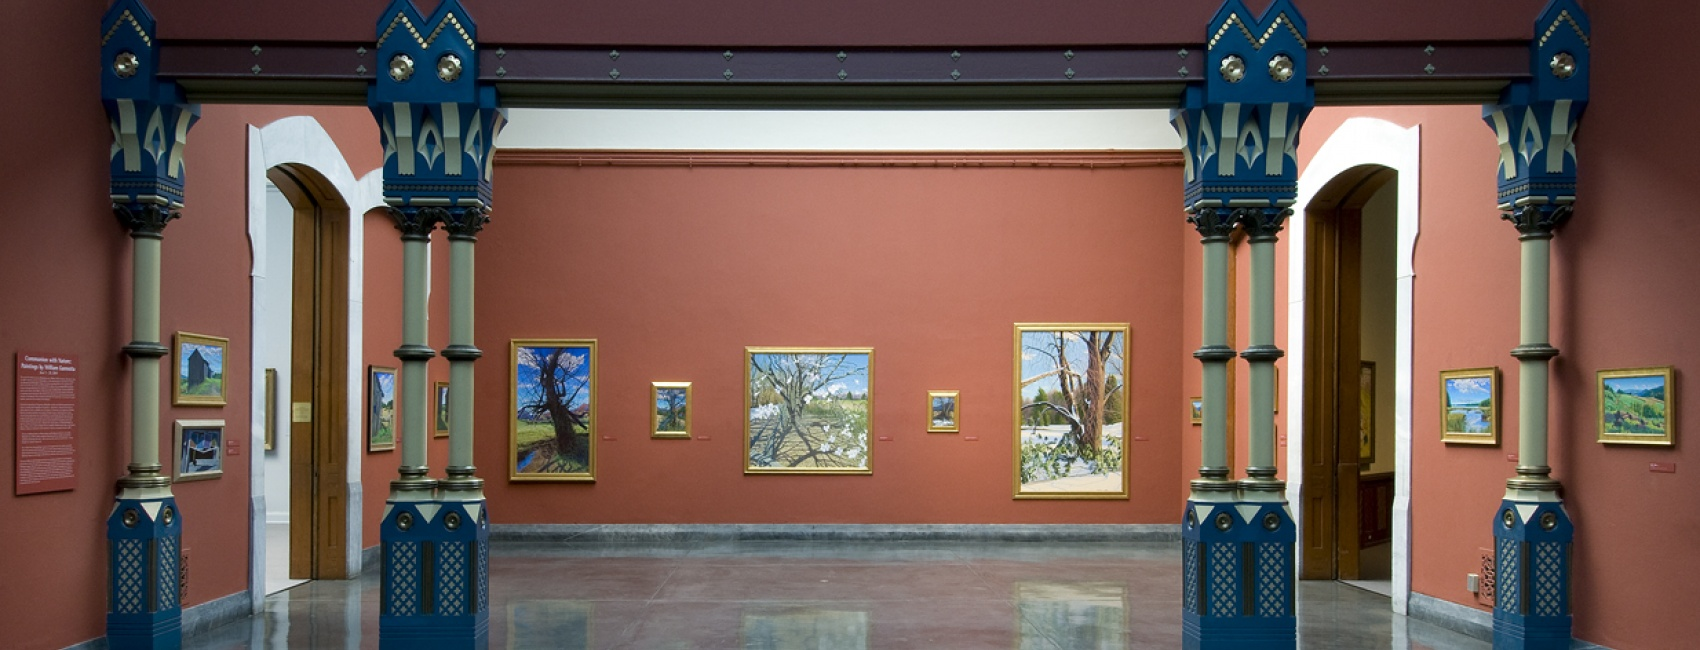 Installation view of <em>Communion with Nature: Paintings by William Gannotta</em>, 2009, Photo by Rick Echelmeyer